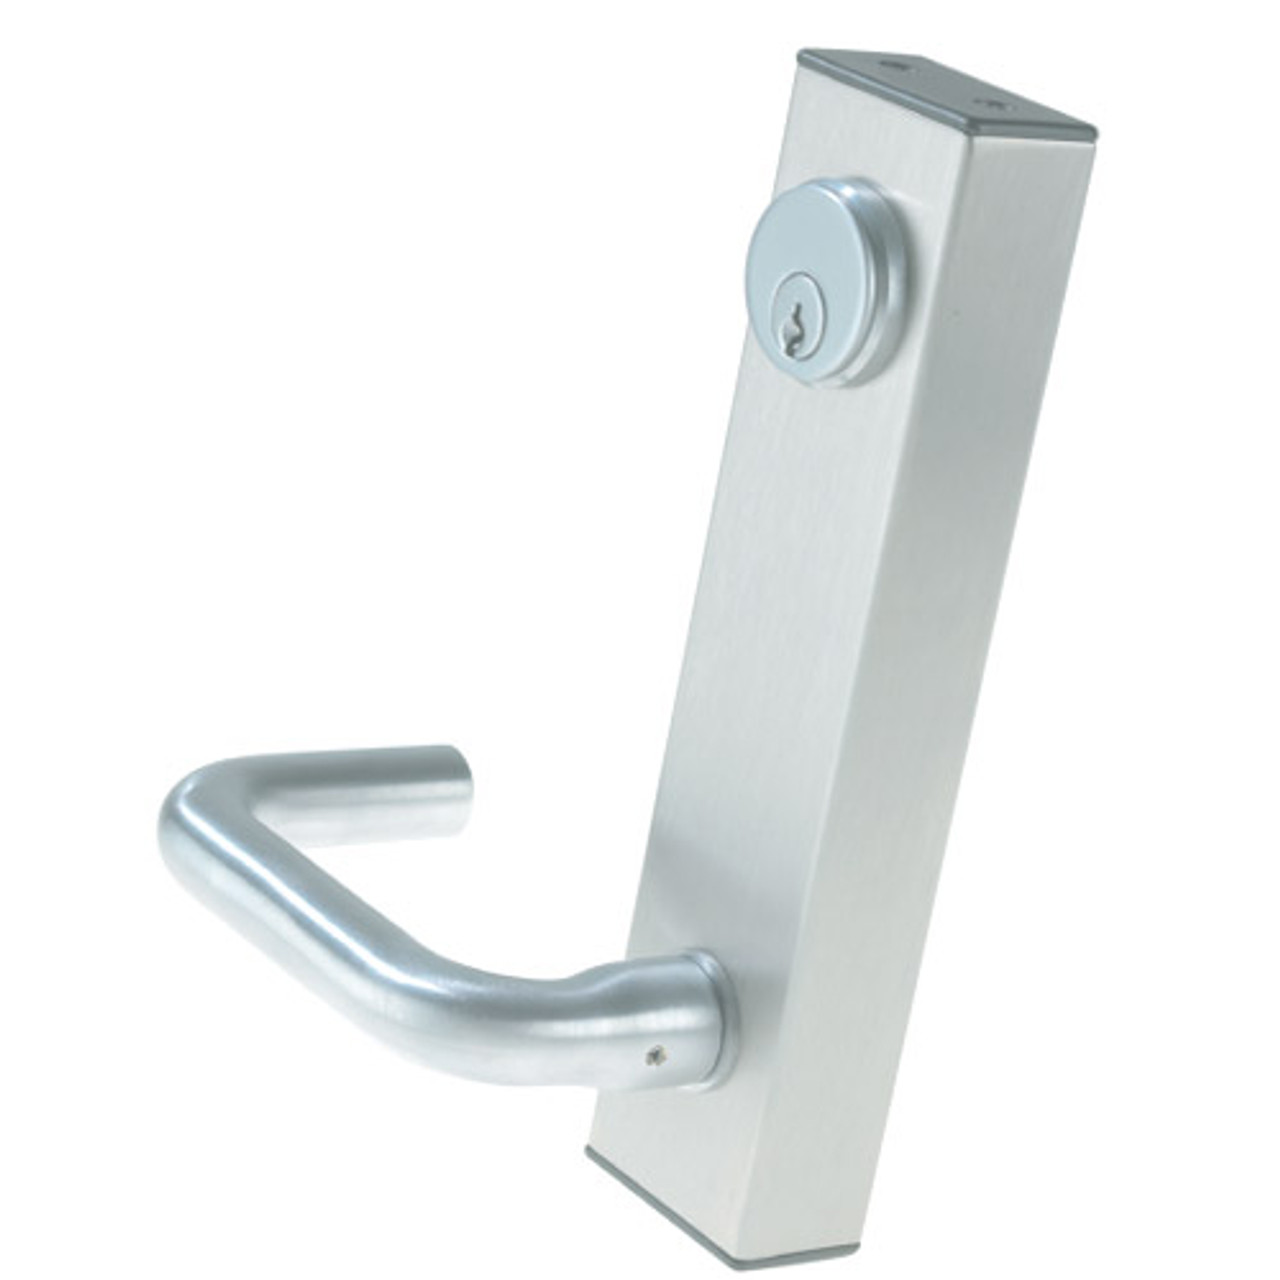 3080E-02-0-3U-35 US32 Adams Rite Electrified Entry Trim with Round Lever in Bright Stainless Finish